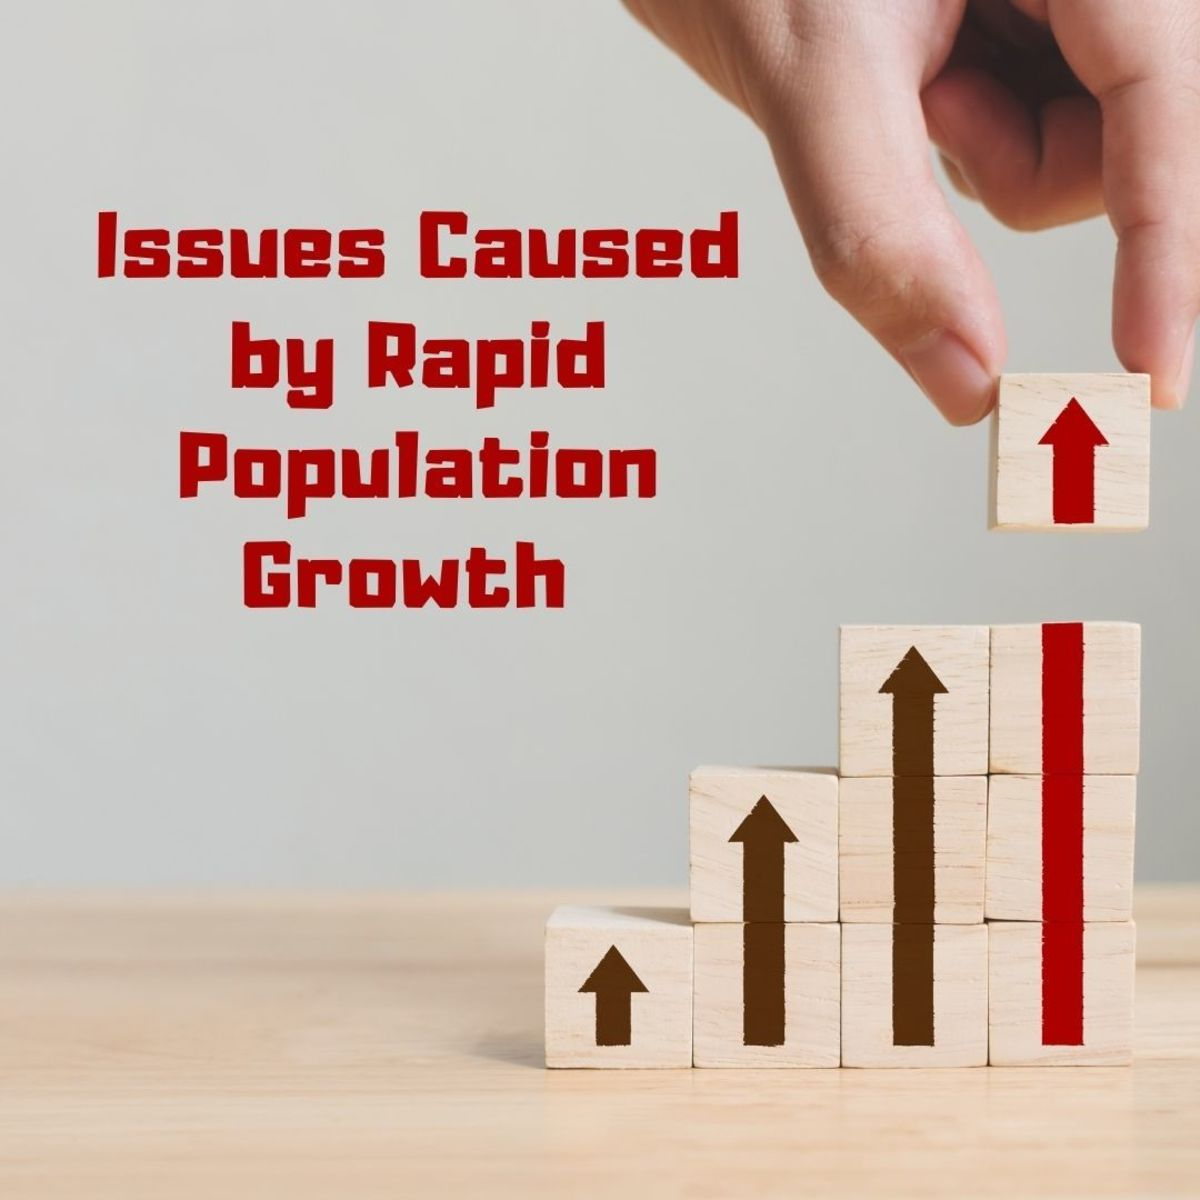 4 Consequences of Rapid Population Growth